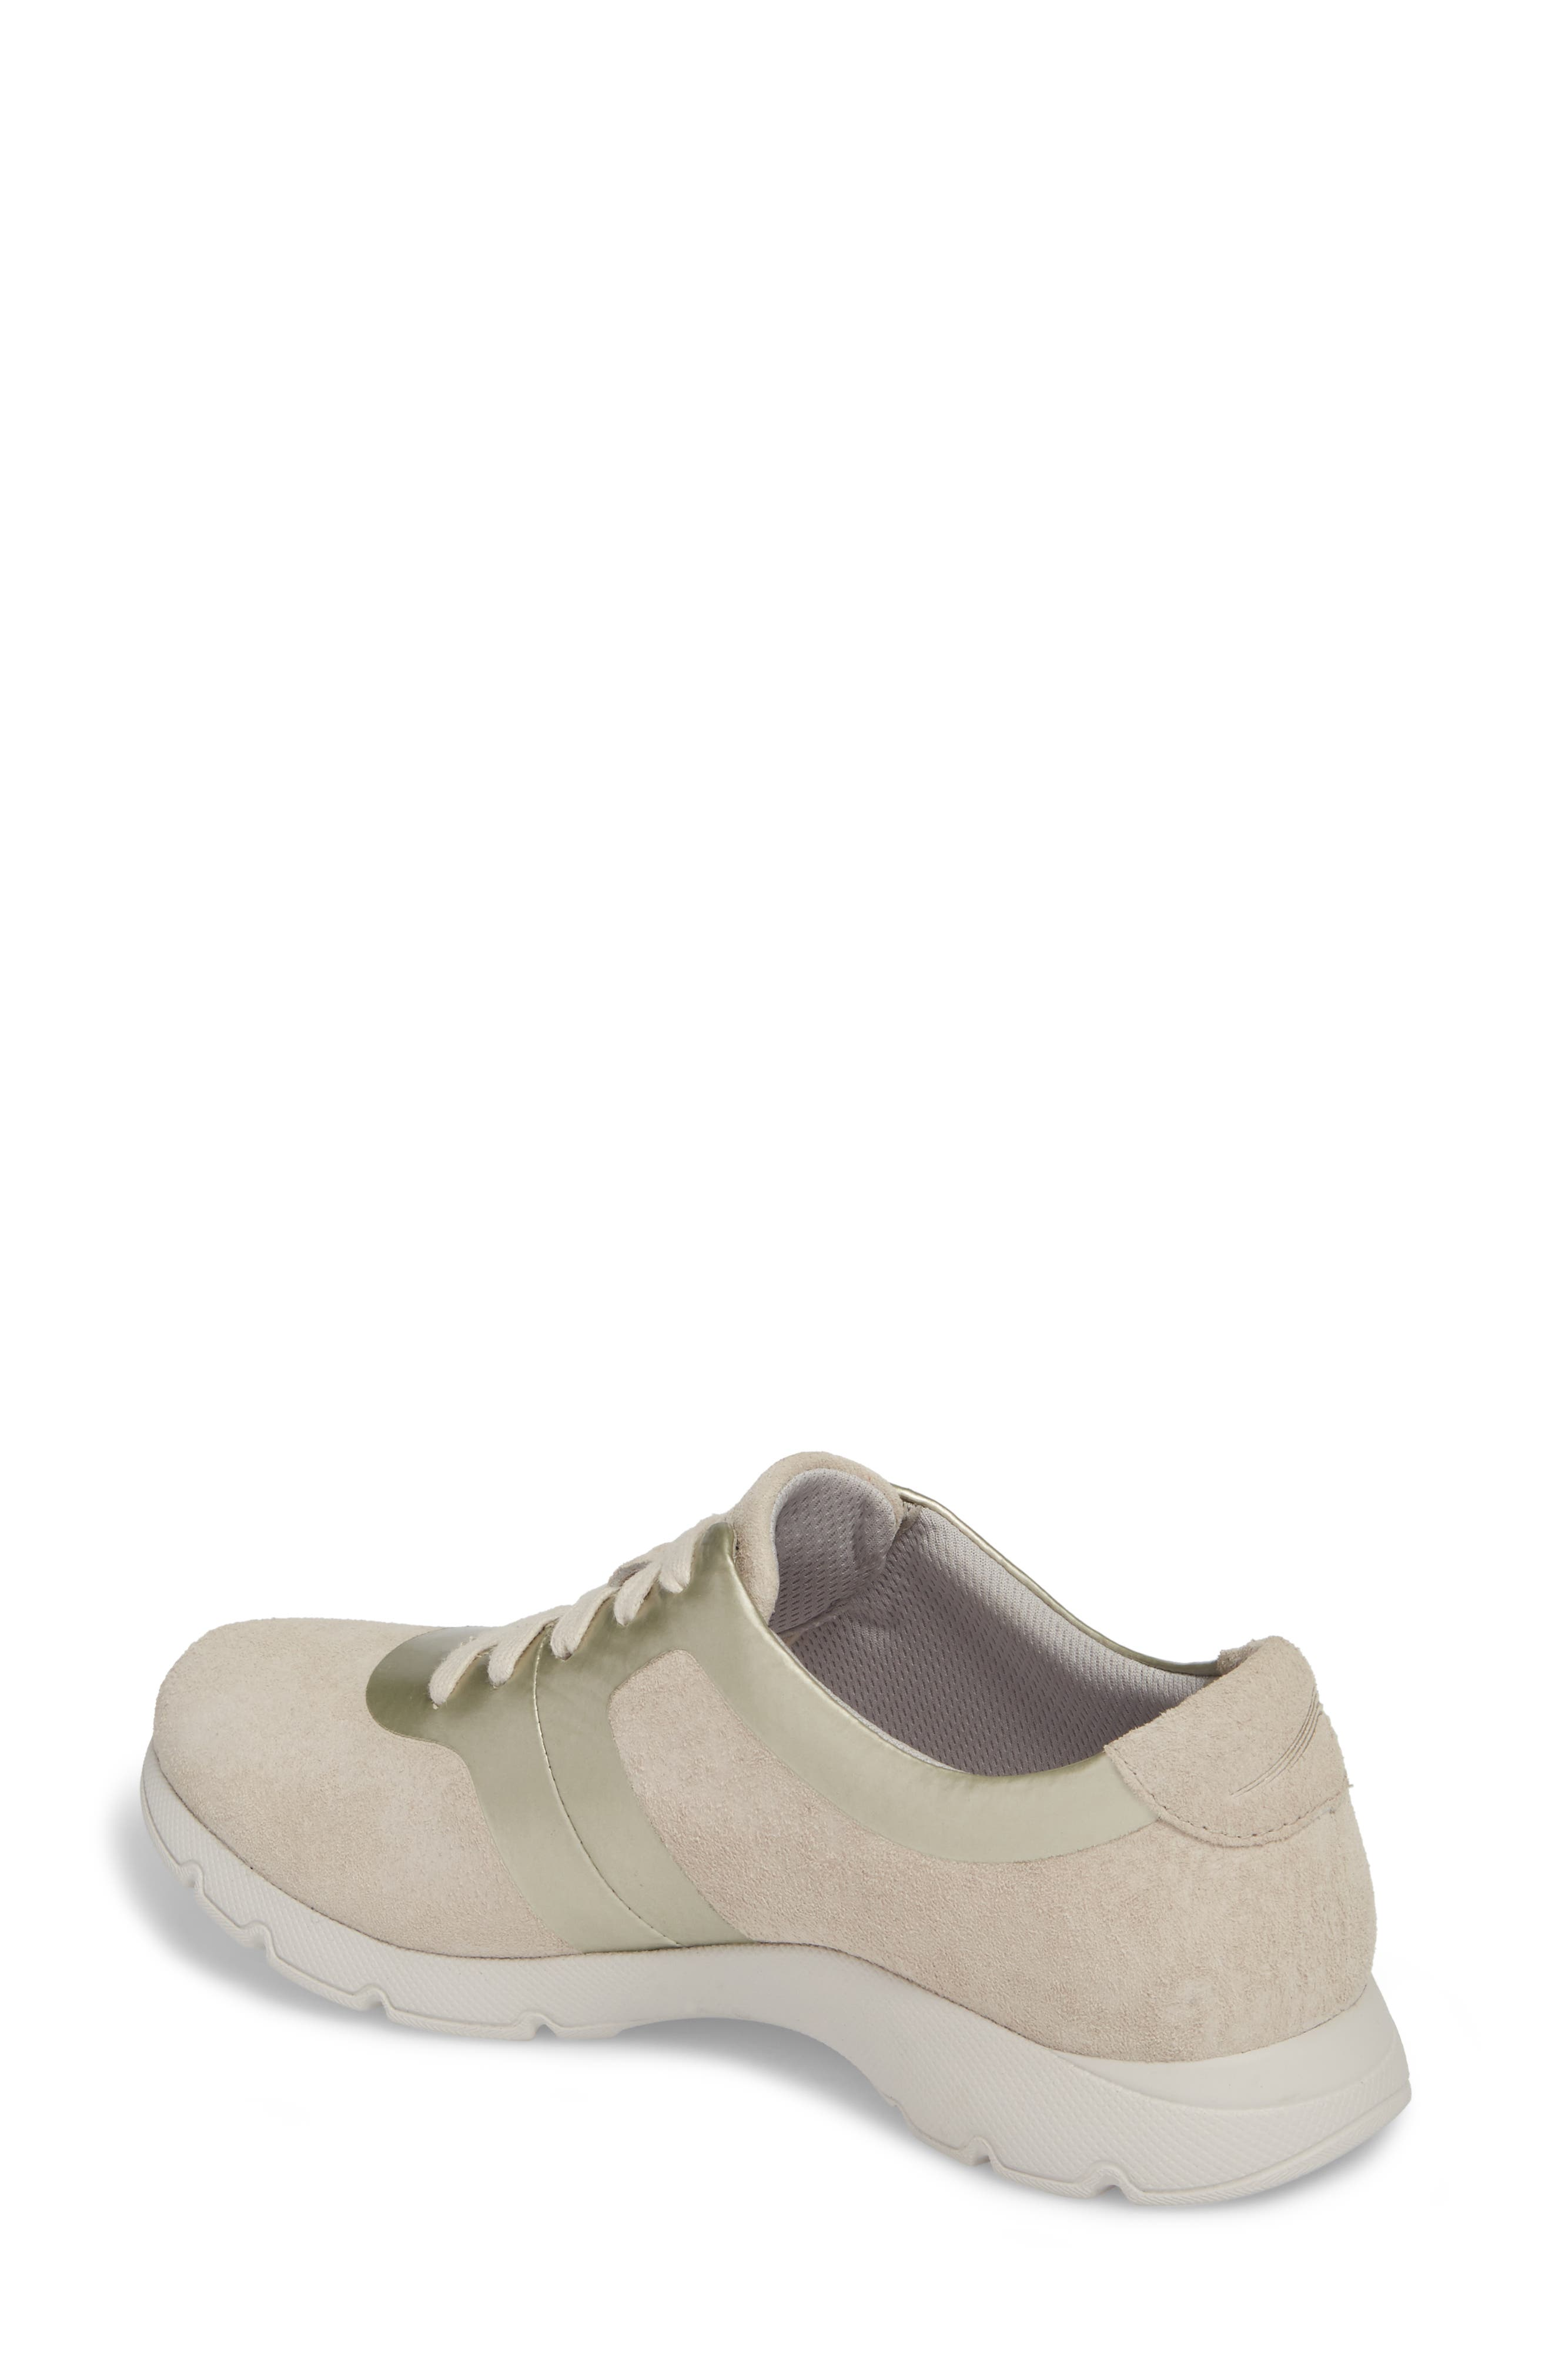 Andi Sneaker,                             Alternate thumbnail 2, color,                             Ivory Leather